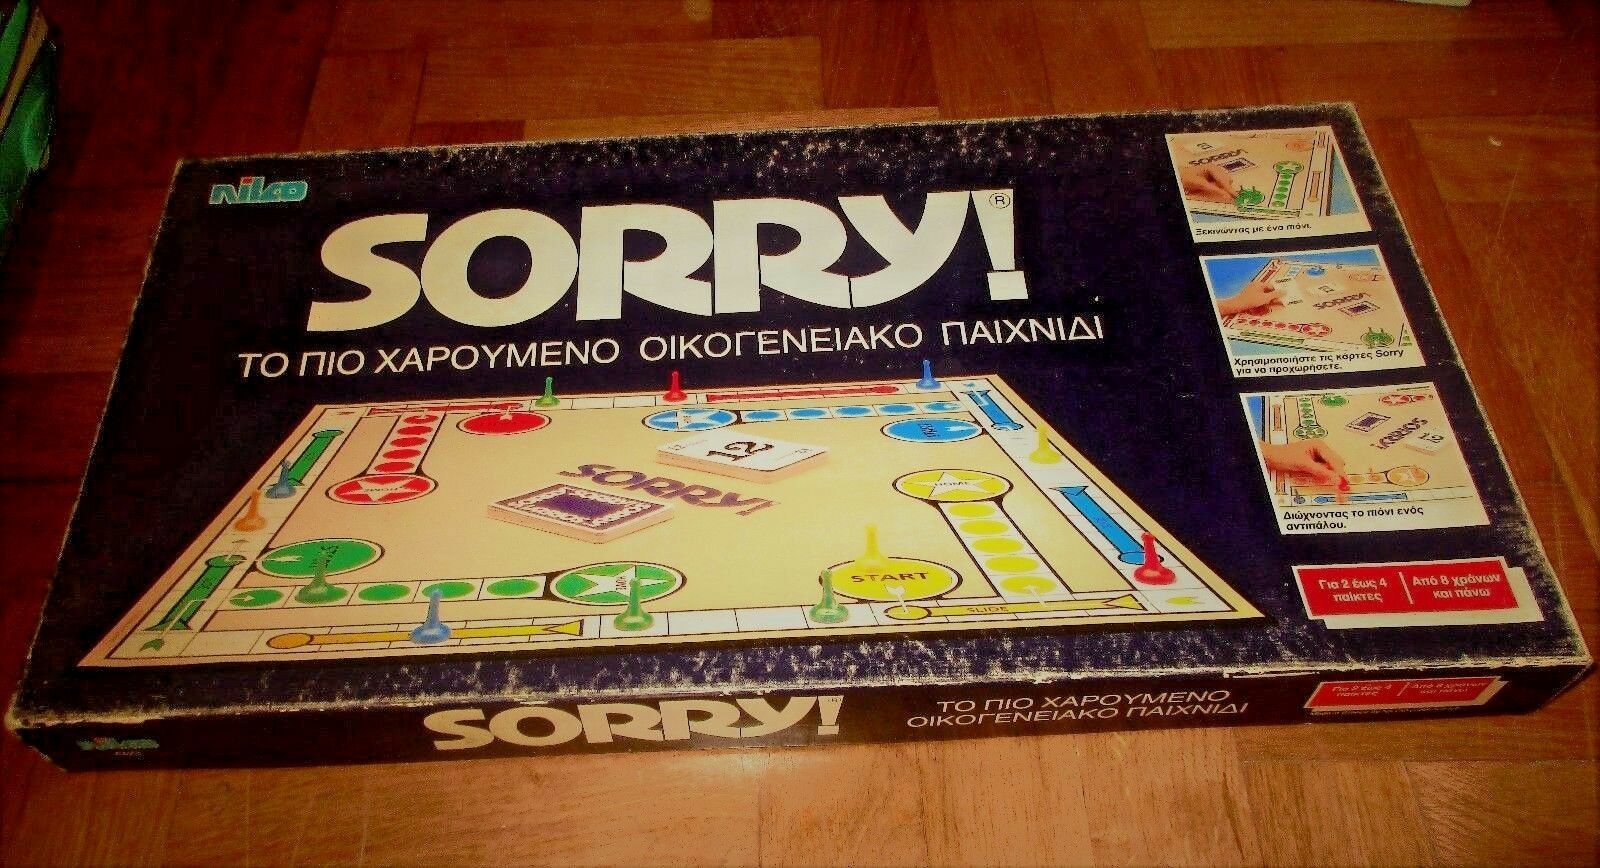 VINTAGE RARE GREEK EDITION BOARD GAME - SORRY - BY NILCO FROM 80s